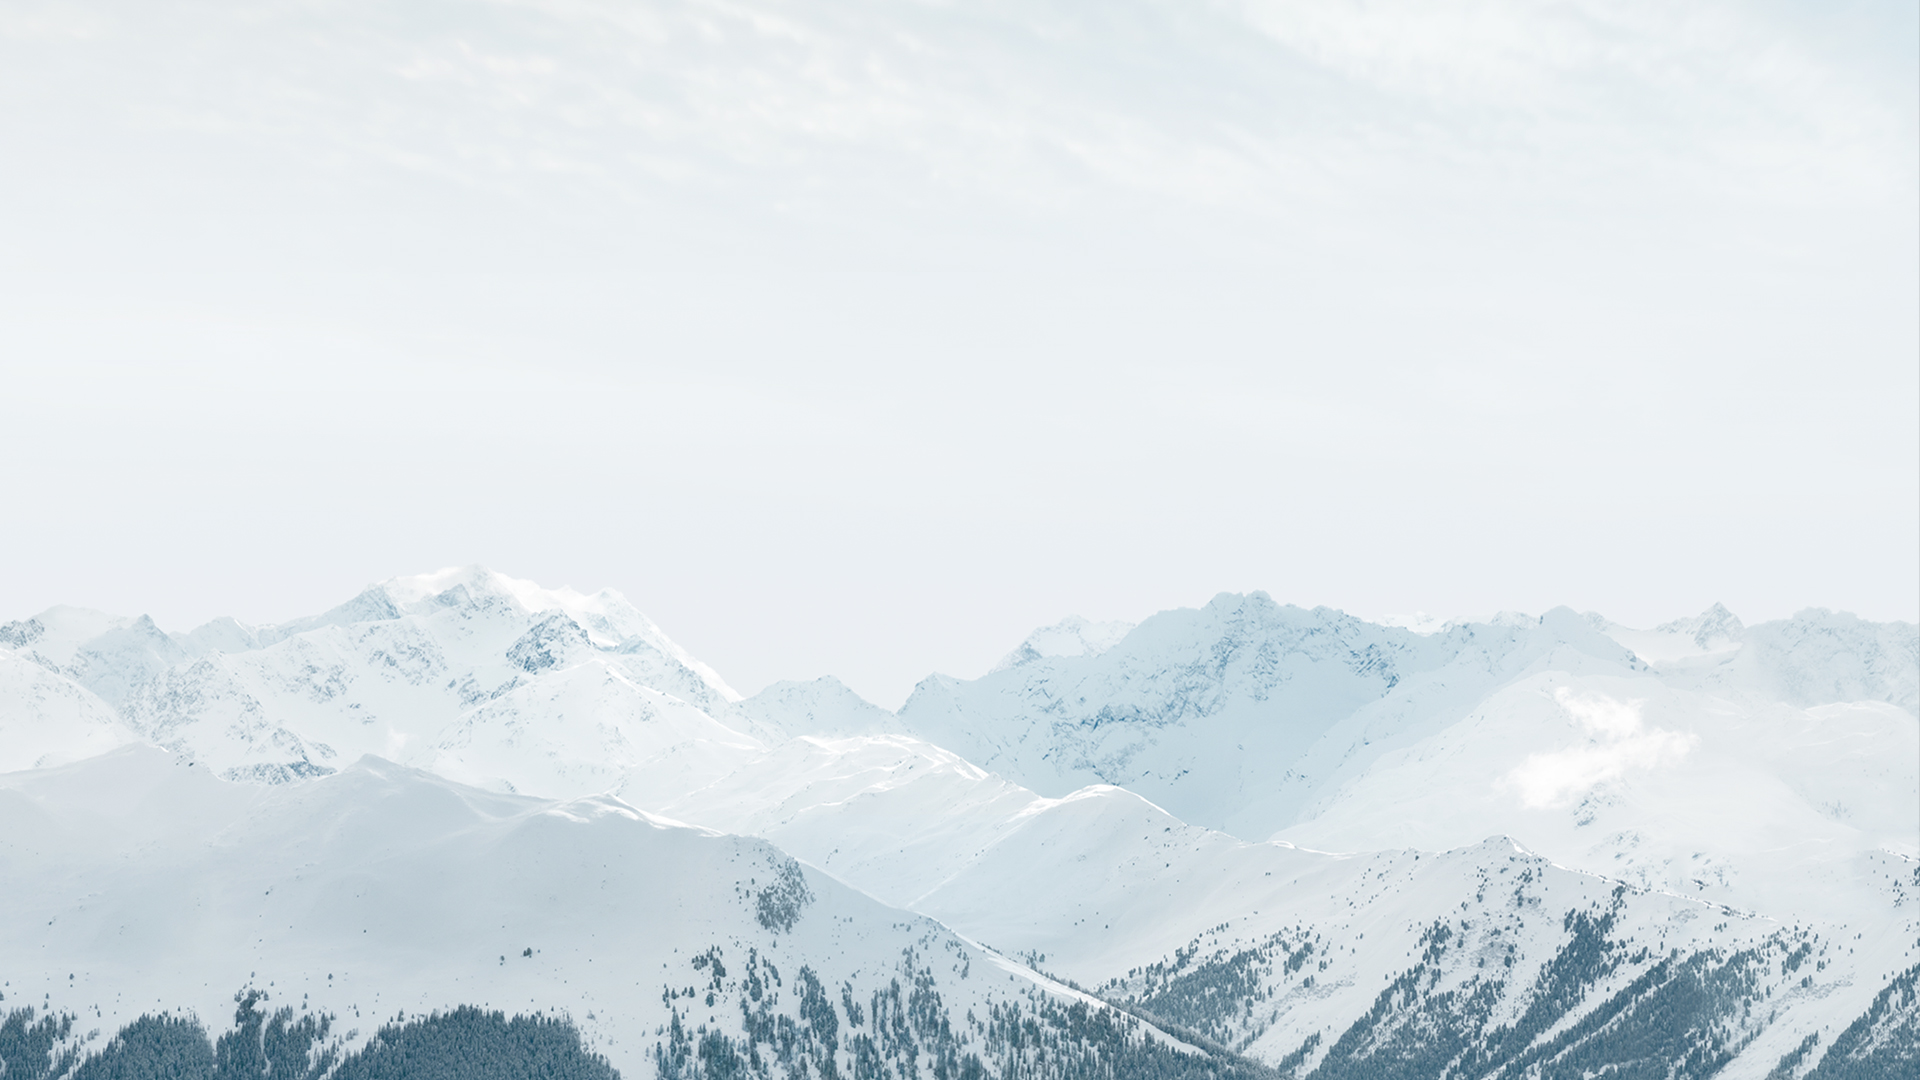 Download the new iOS 8 wallpapers 1920x1080